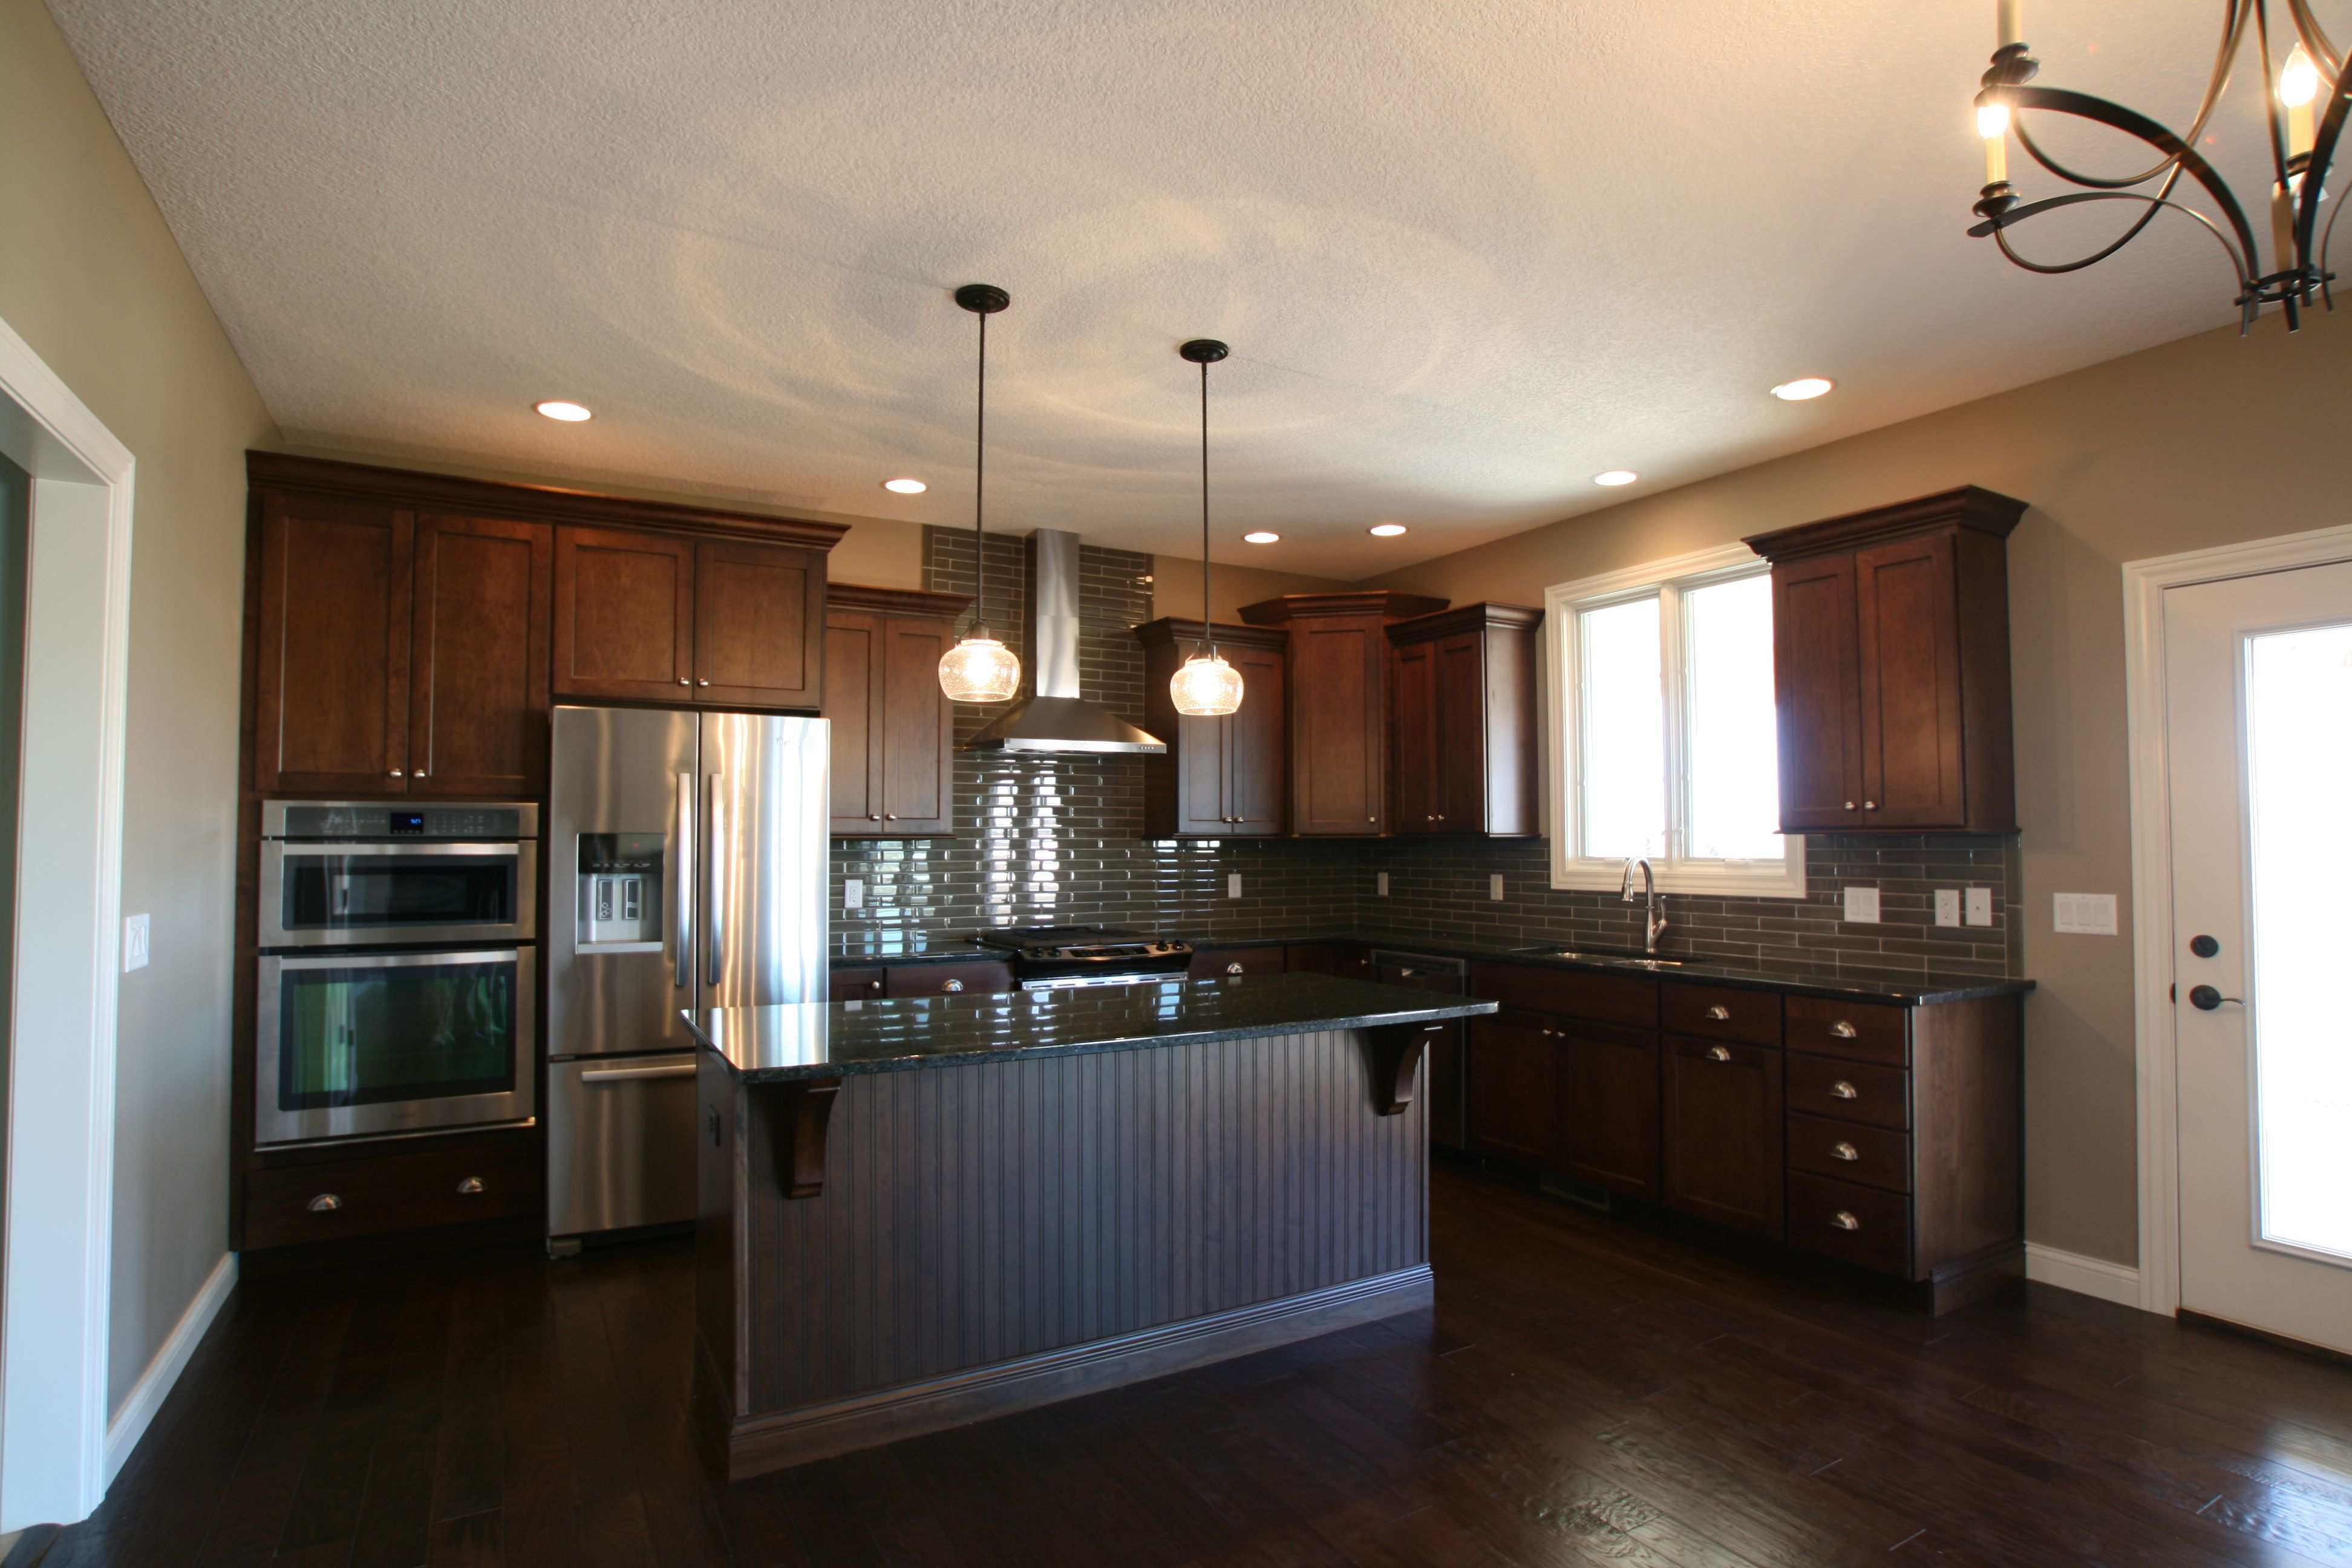 cabinets stretch all the way to the ceiling in this transitional kitchen glasstile installed on kitchen cabinets to the ceiling id=70605